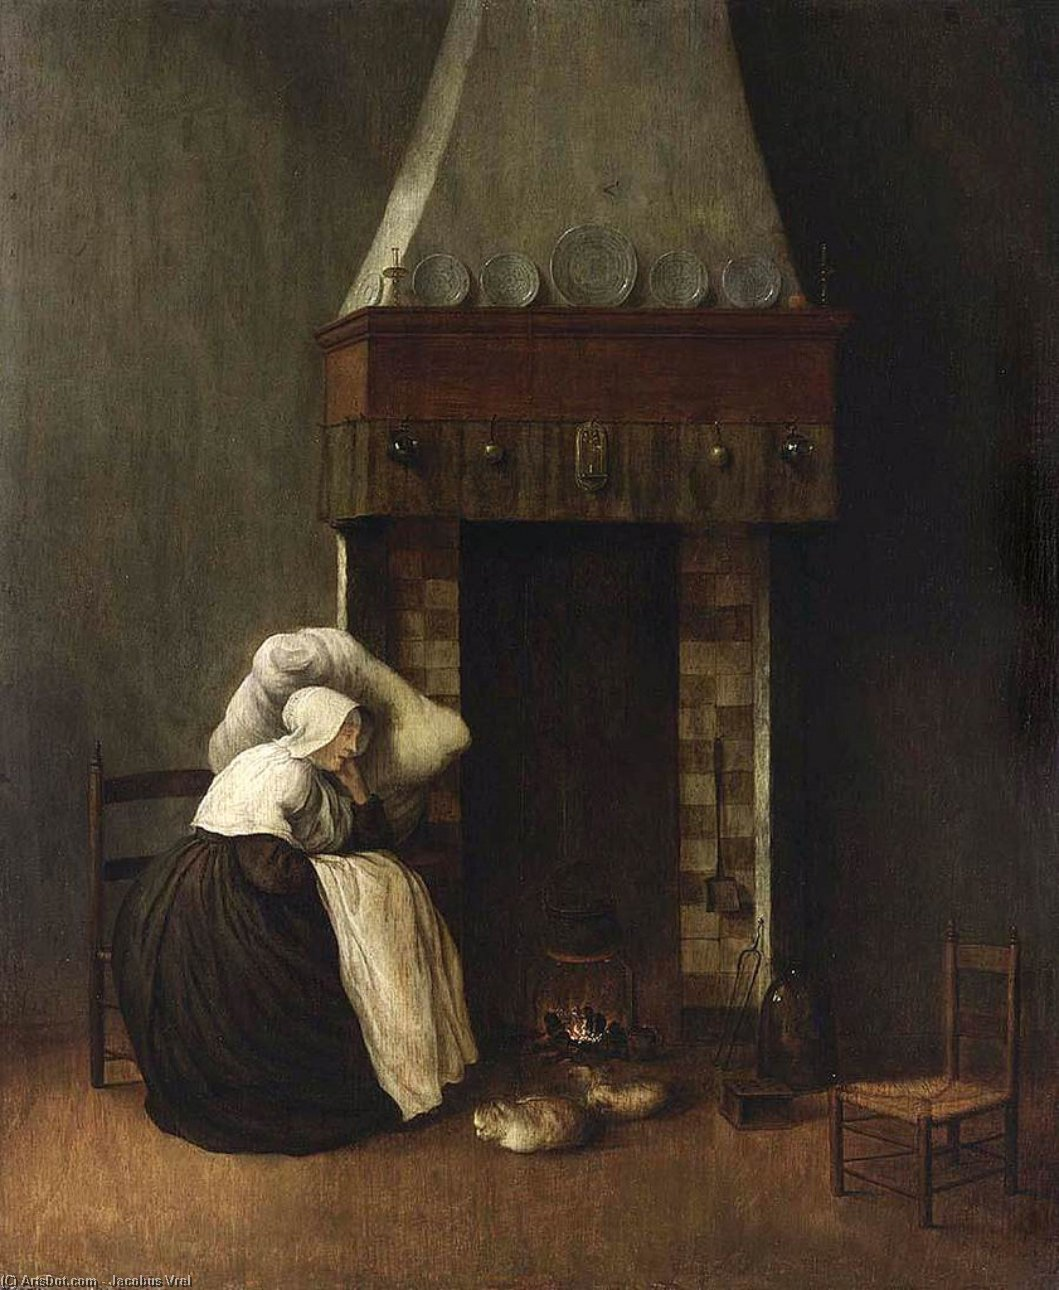 Sleeping Woman (The Convalescent), 1654 by Jacobus Vrel (1617-1681, Netherlands) | Reproductions Jacobus Vrel | ArtsDot.com